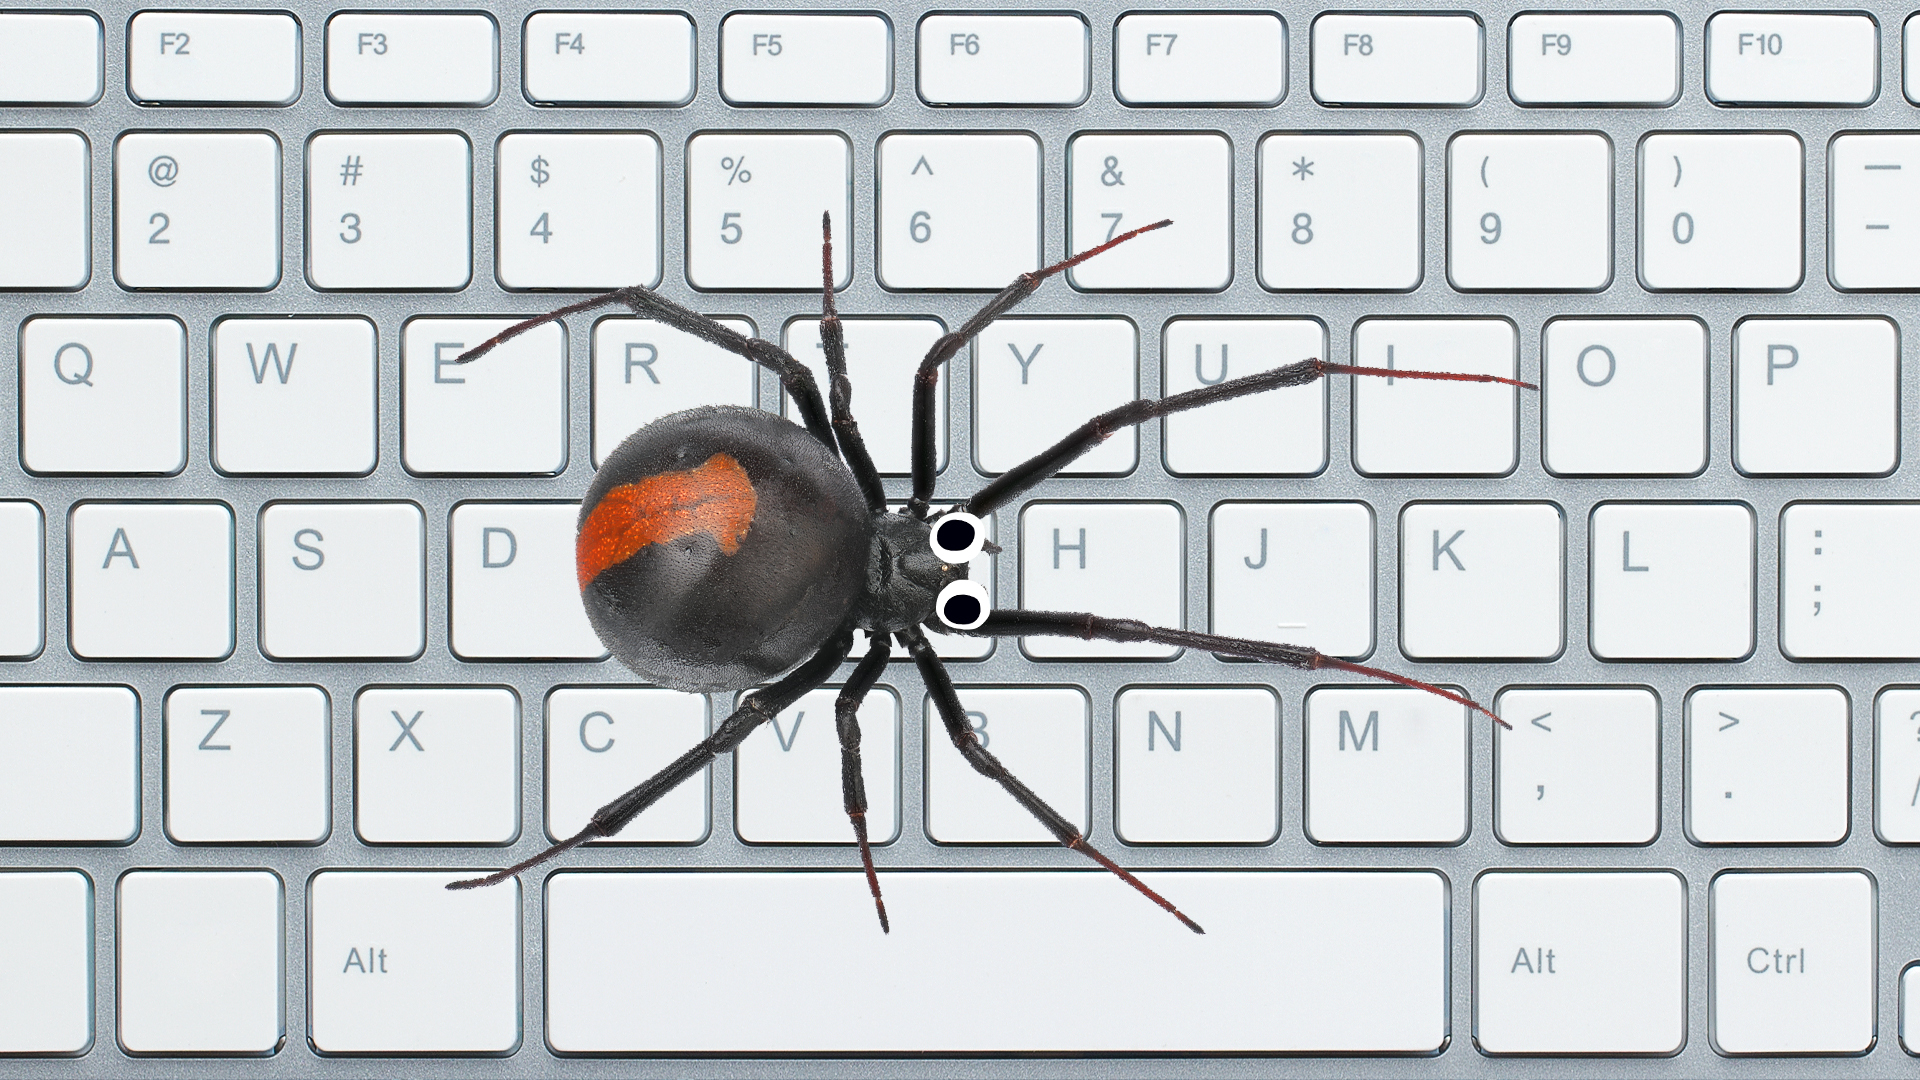 A spider on a keyboard